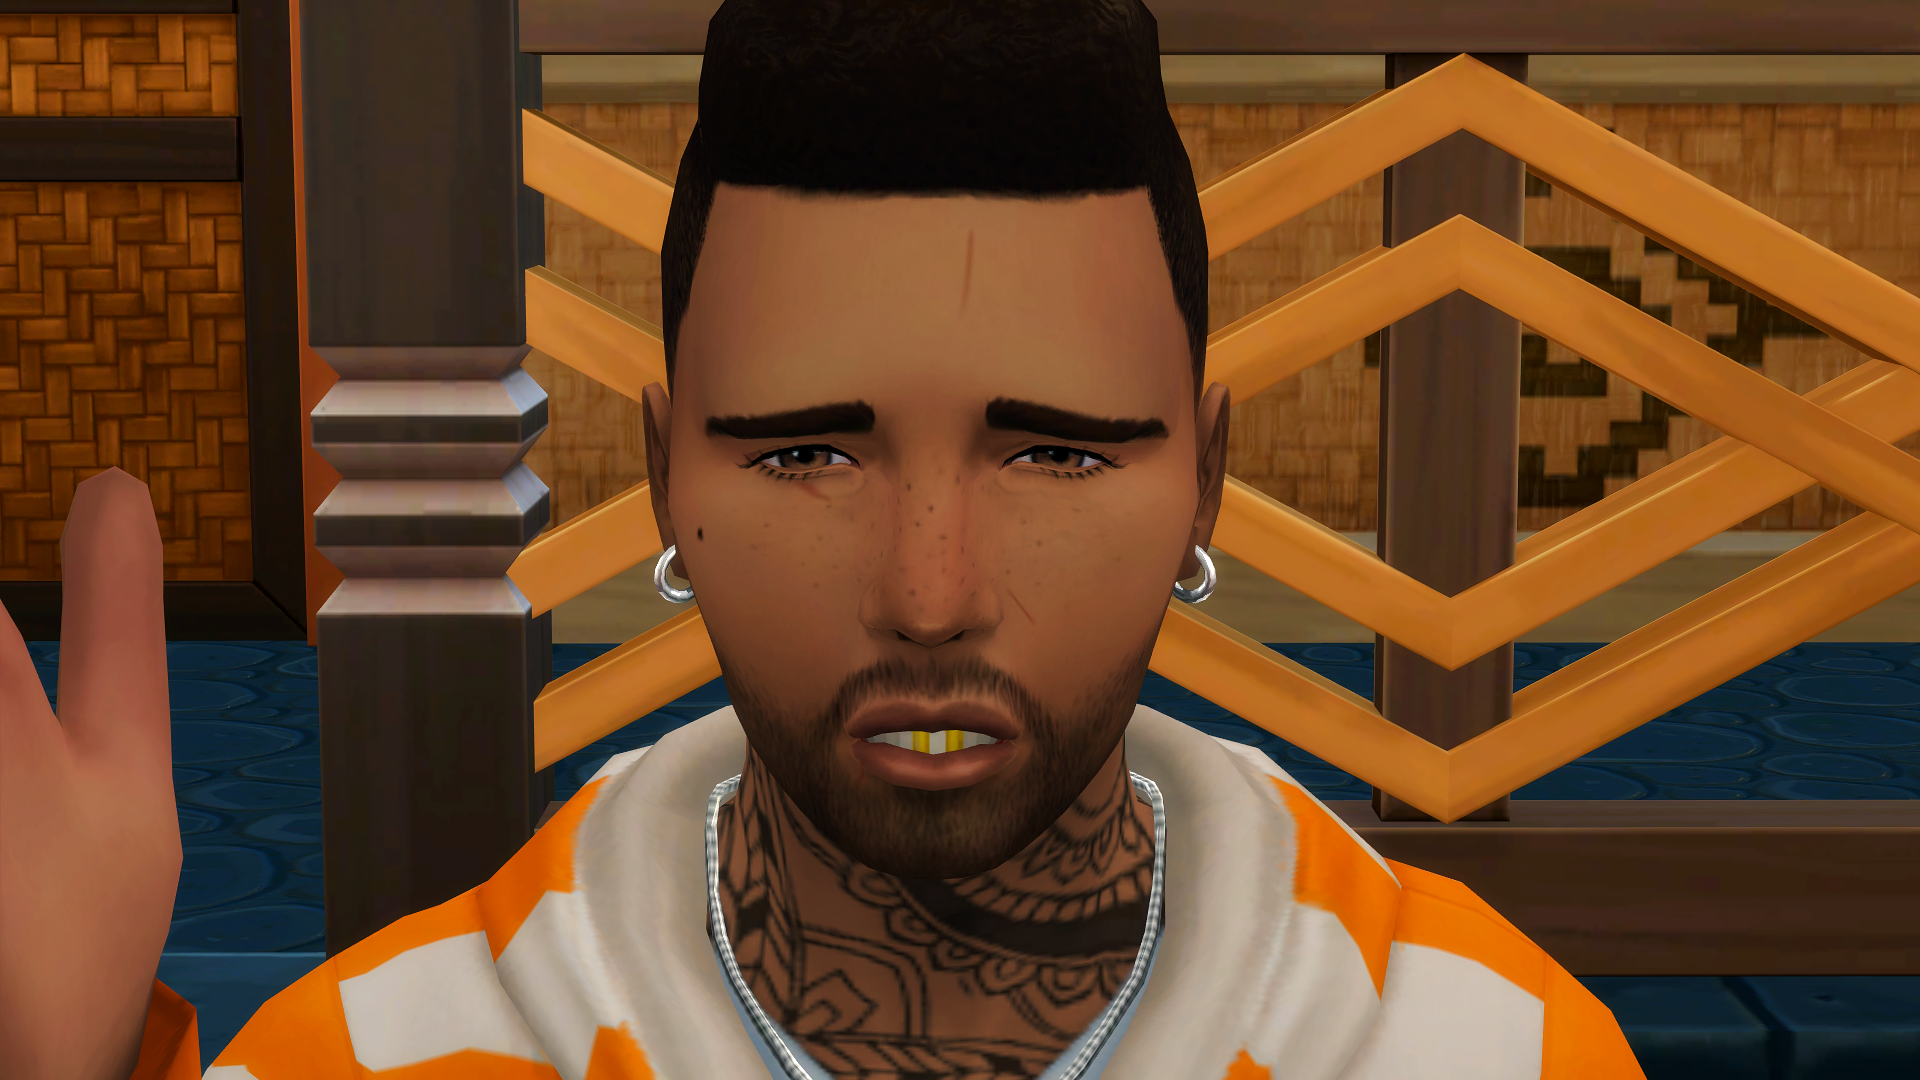 Brodie-Angry.png